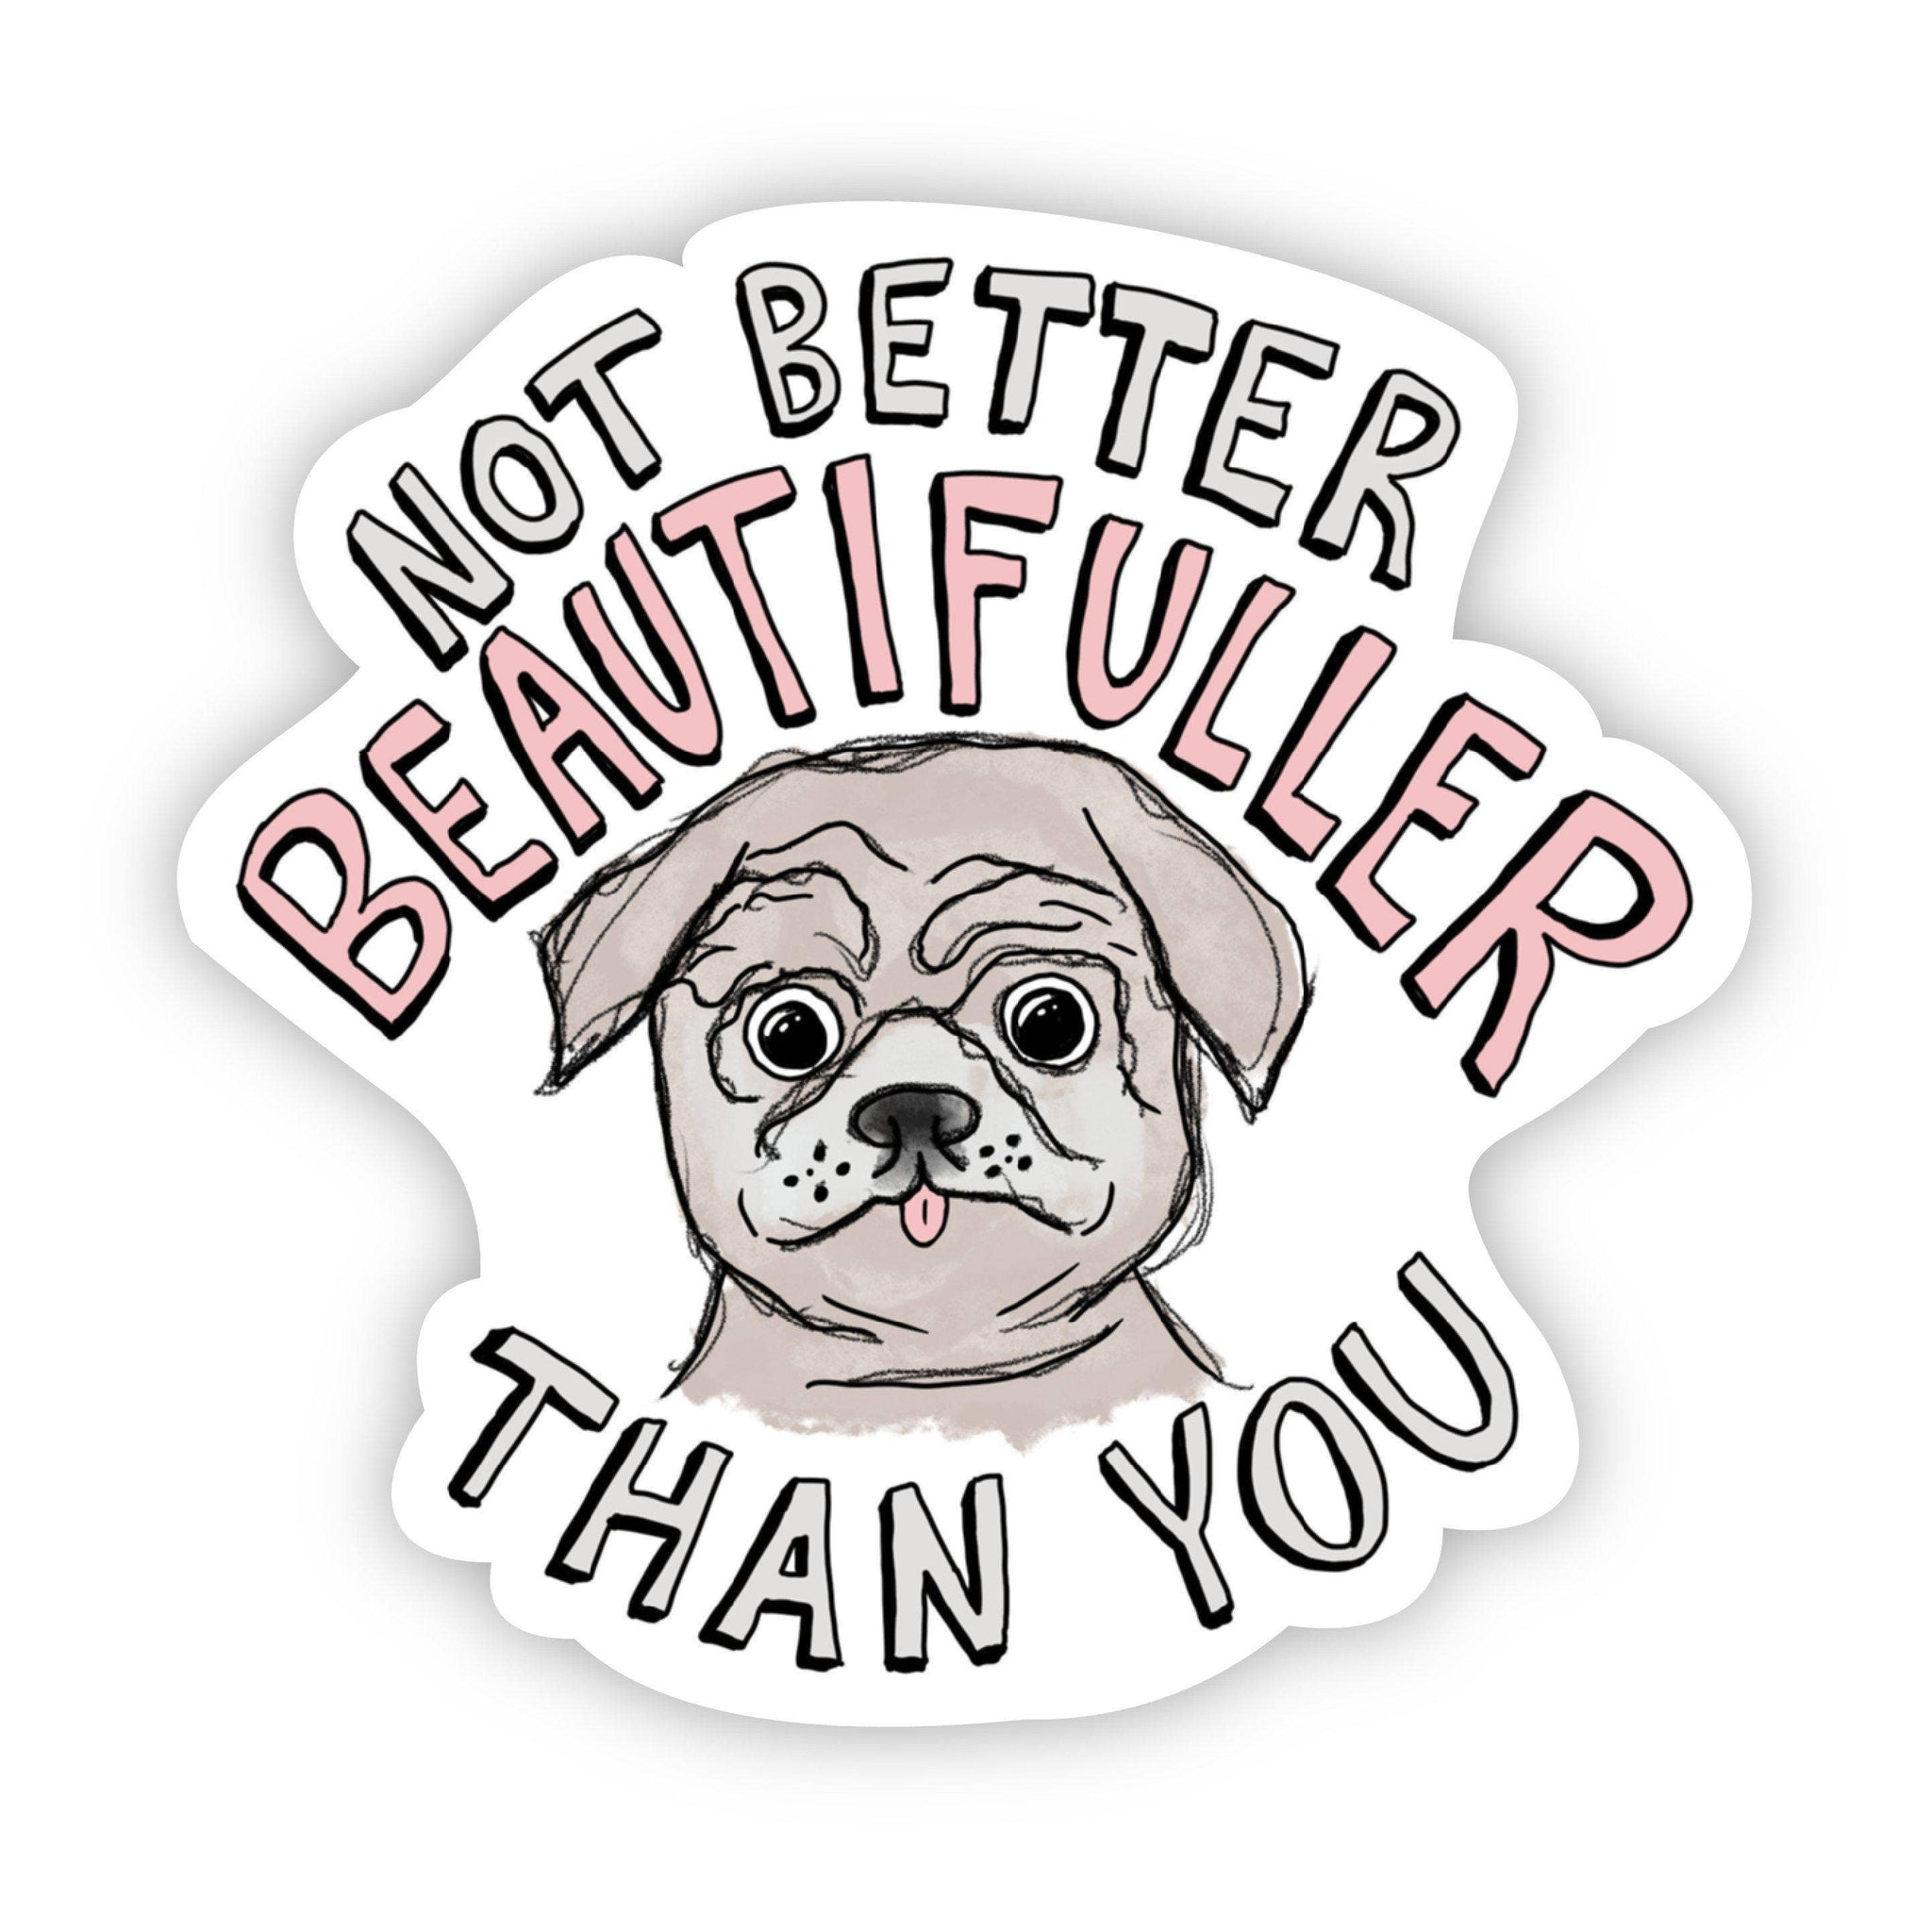 Not Better Beautifuller Than You Sticker